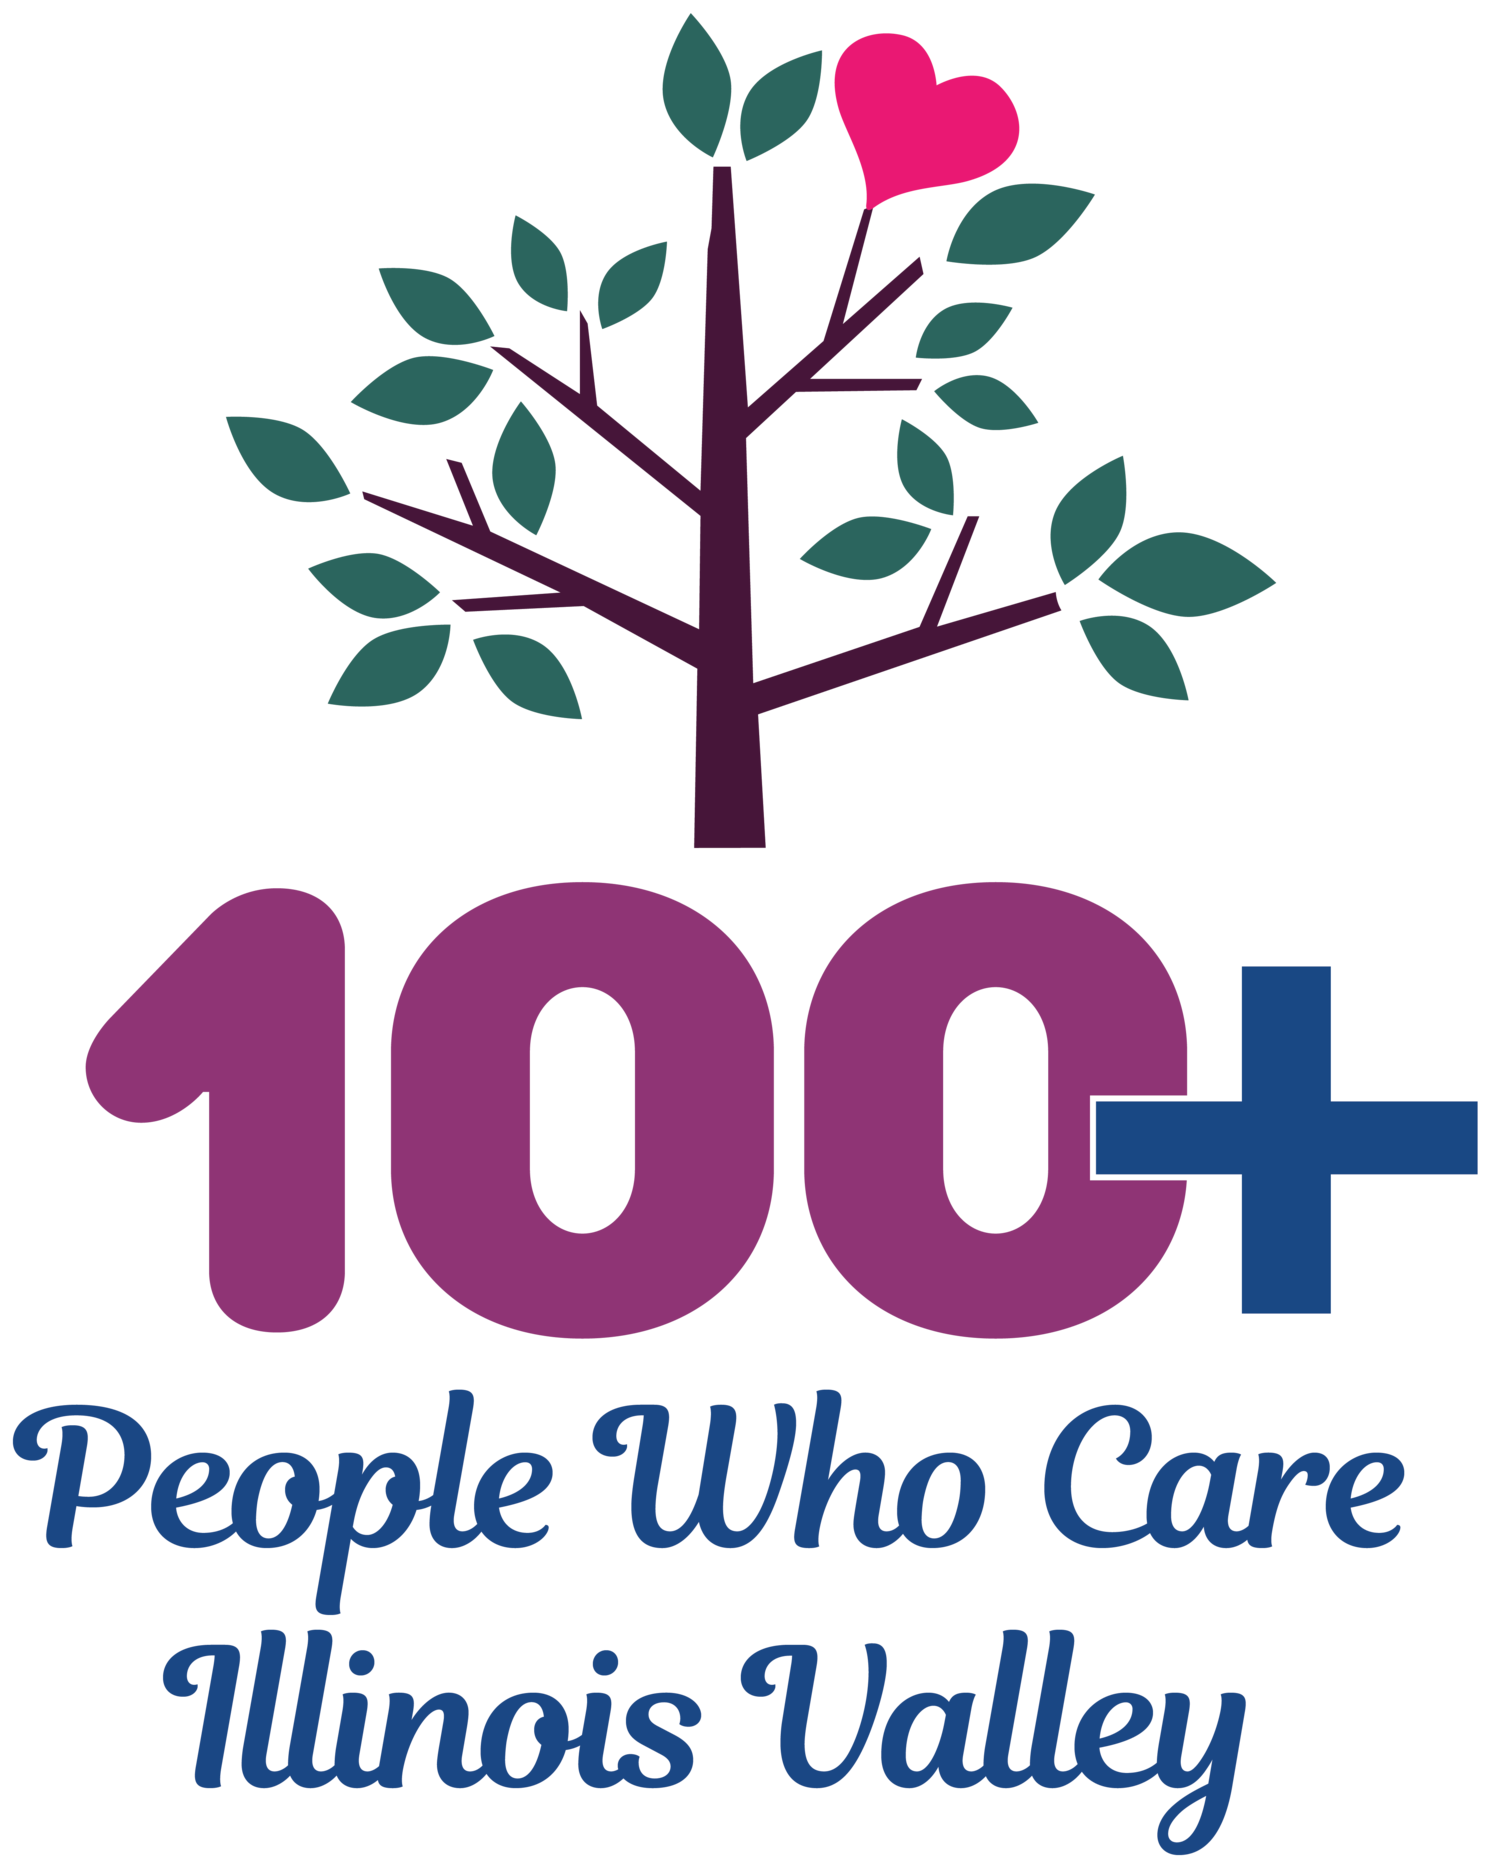 100+ People Who Care